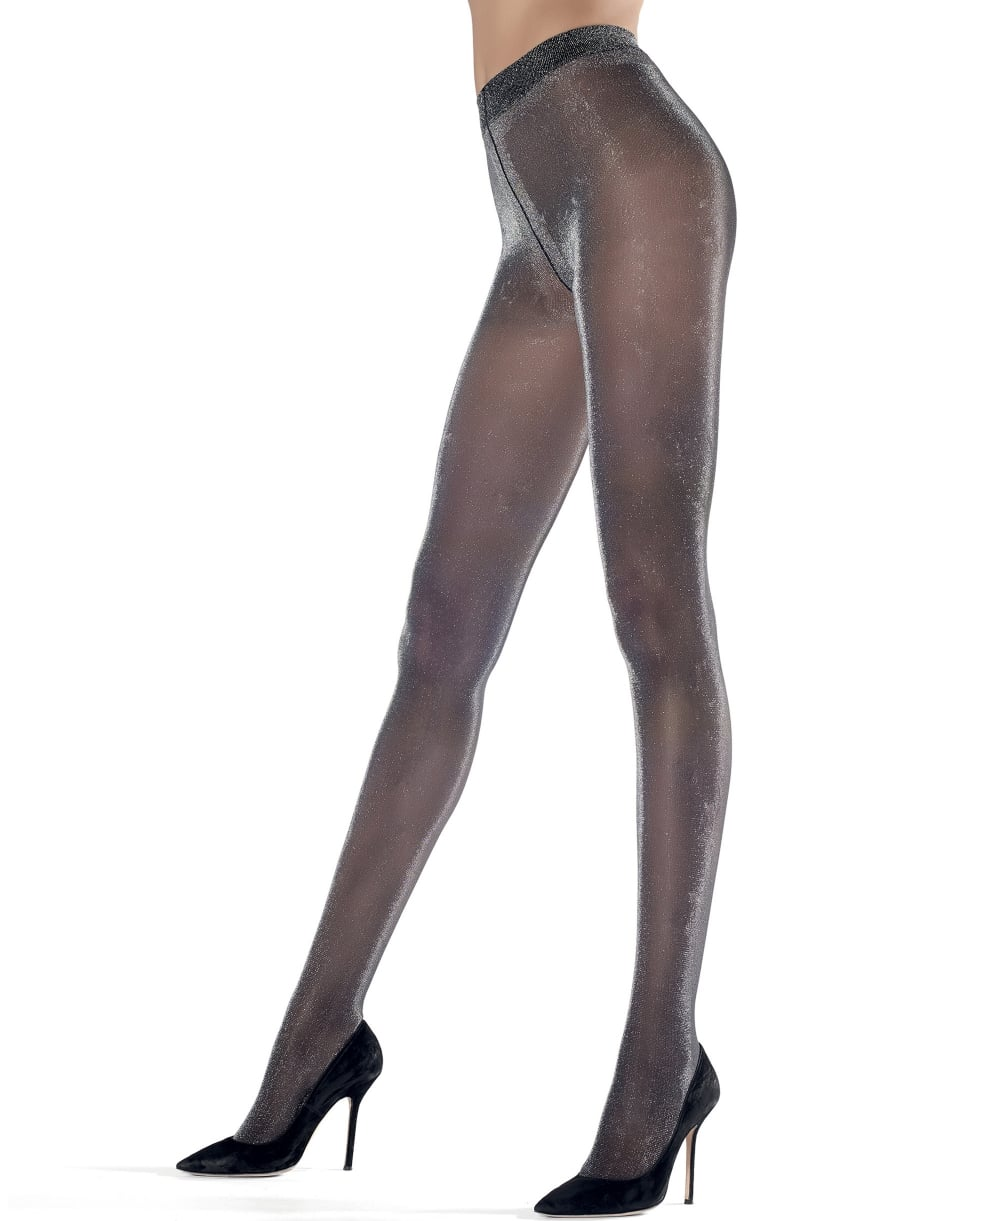 e2764d7500c11 Oroblu Diamonds Tights - Tights from luxury-legs.com UK